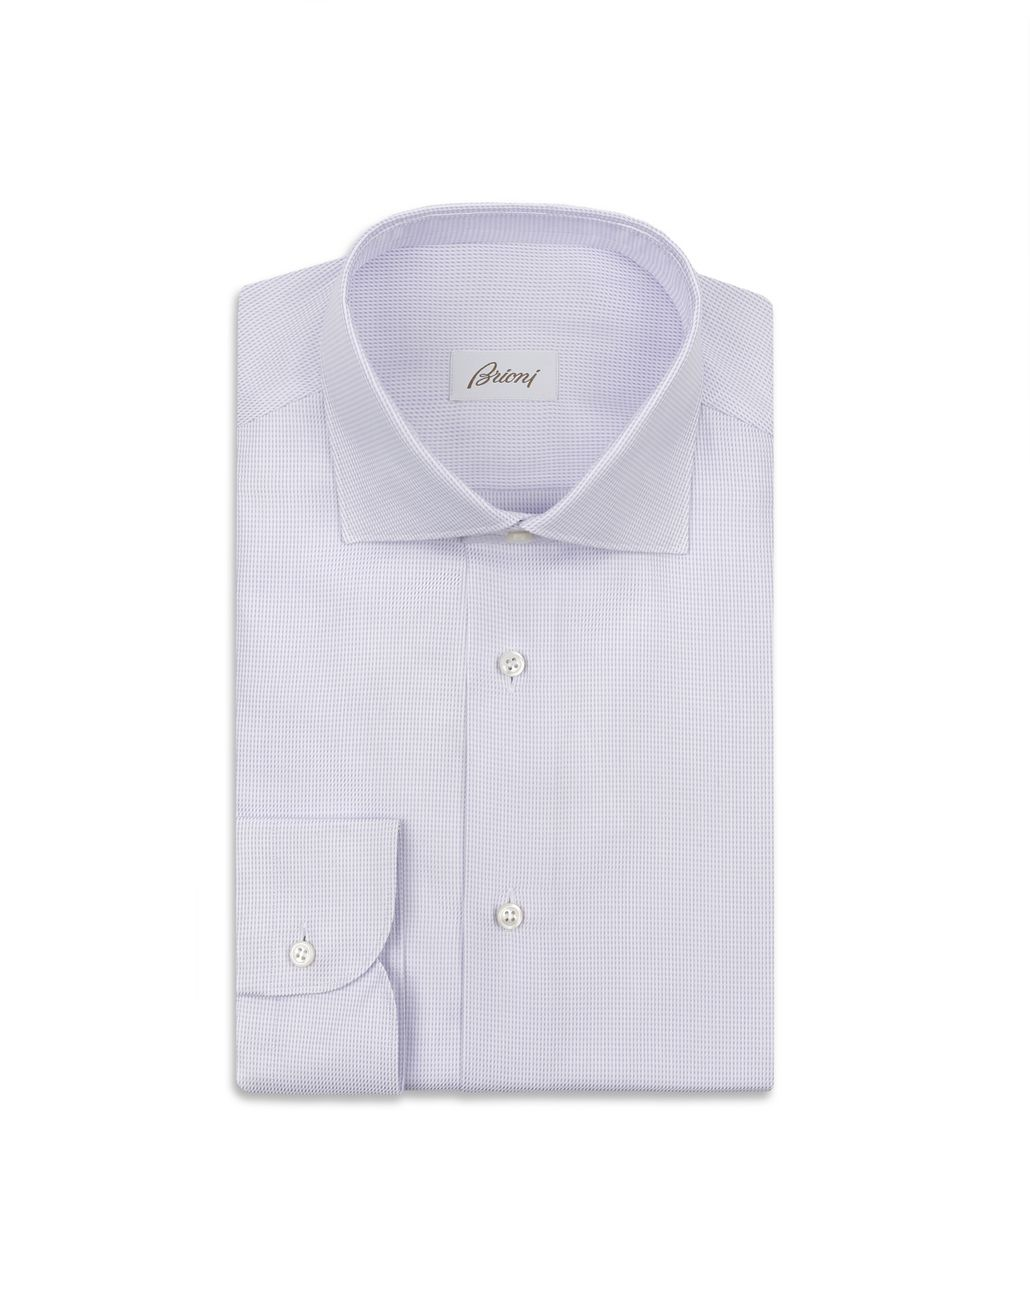 BRIONI White and Liliac Micro Checked Shirt Formal shirt Man f